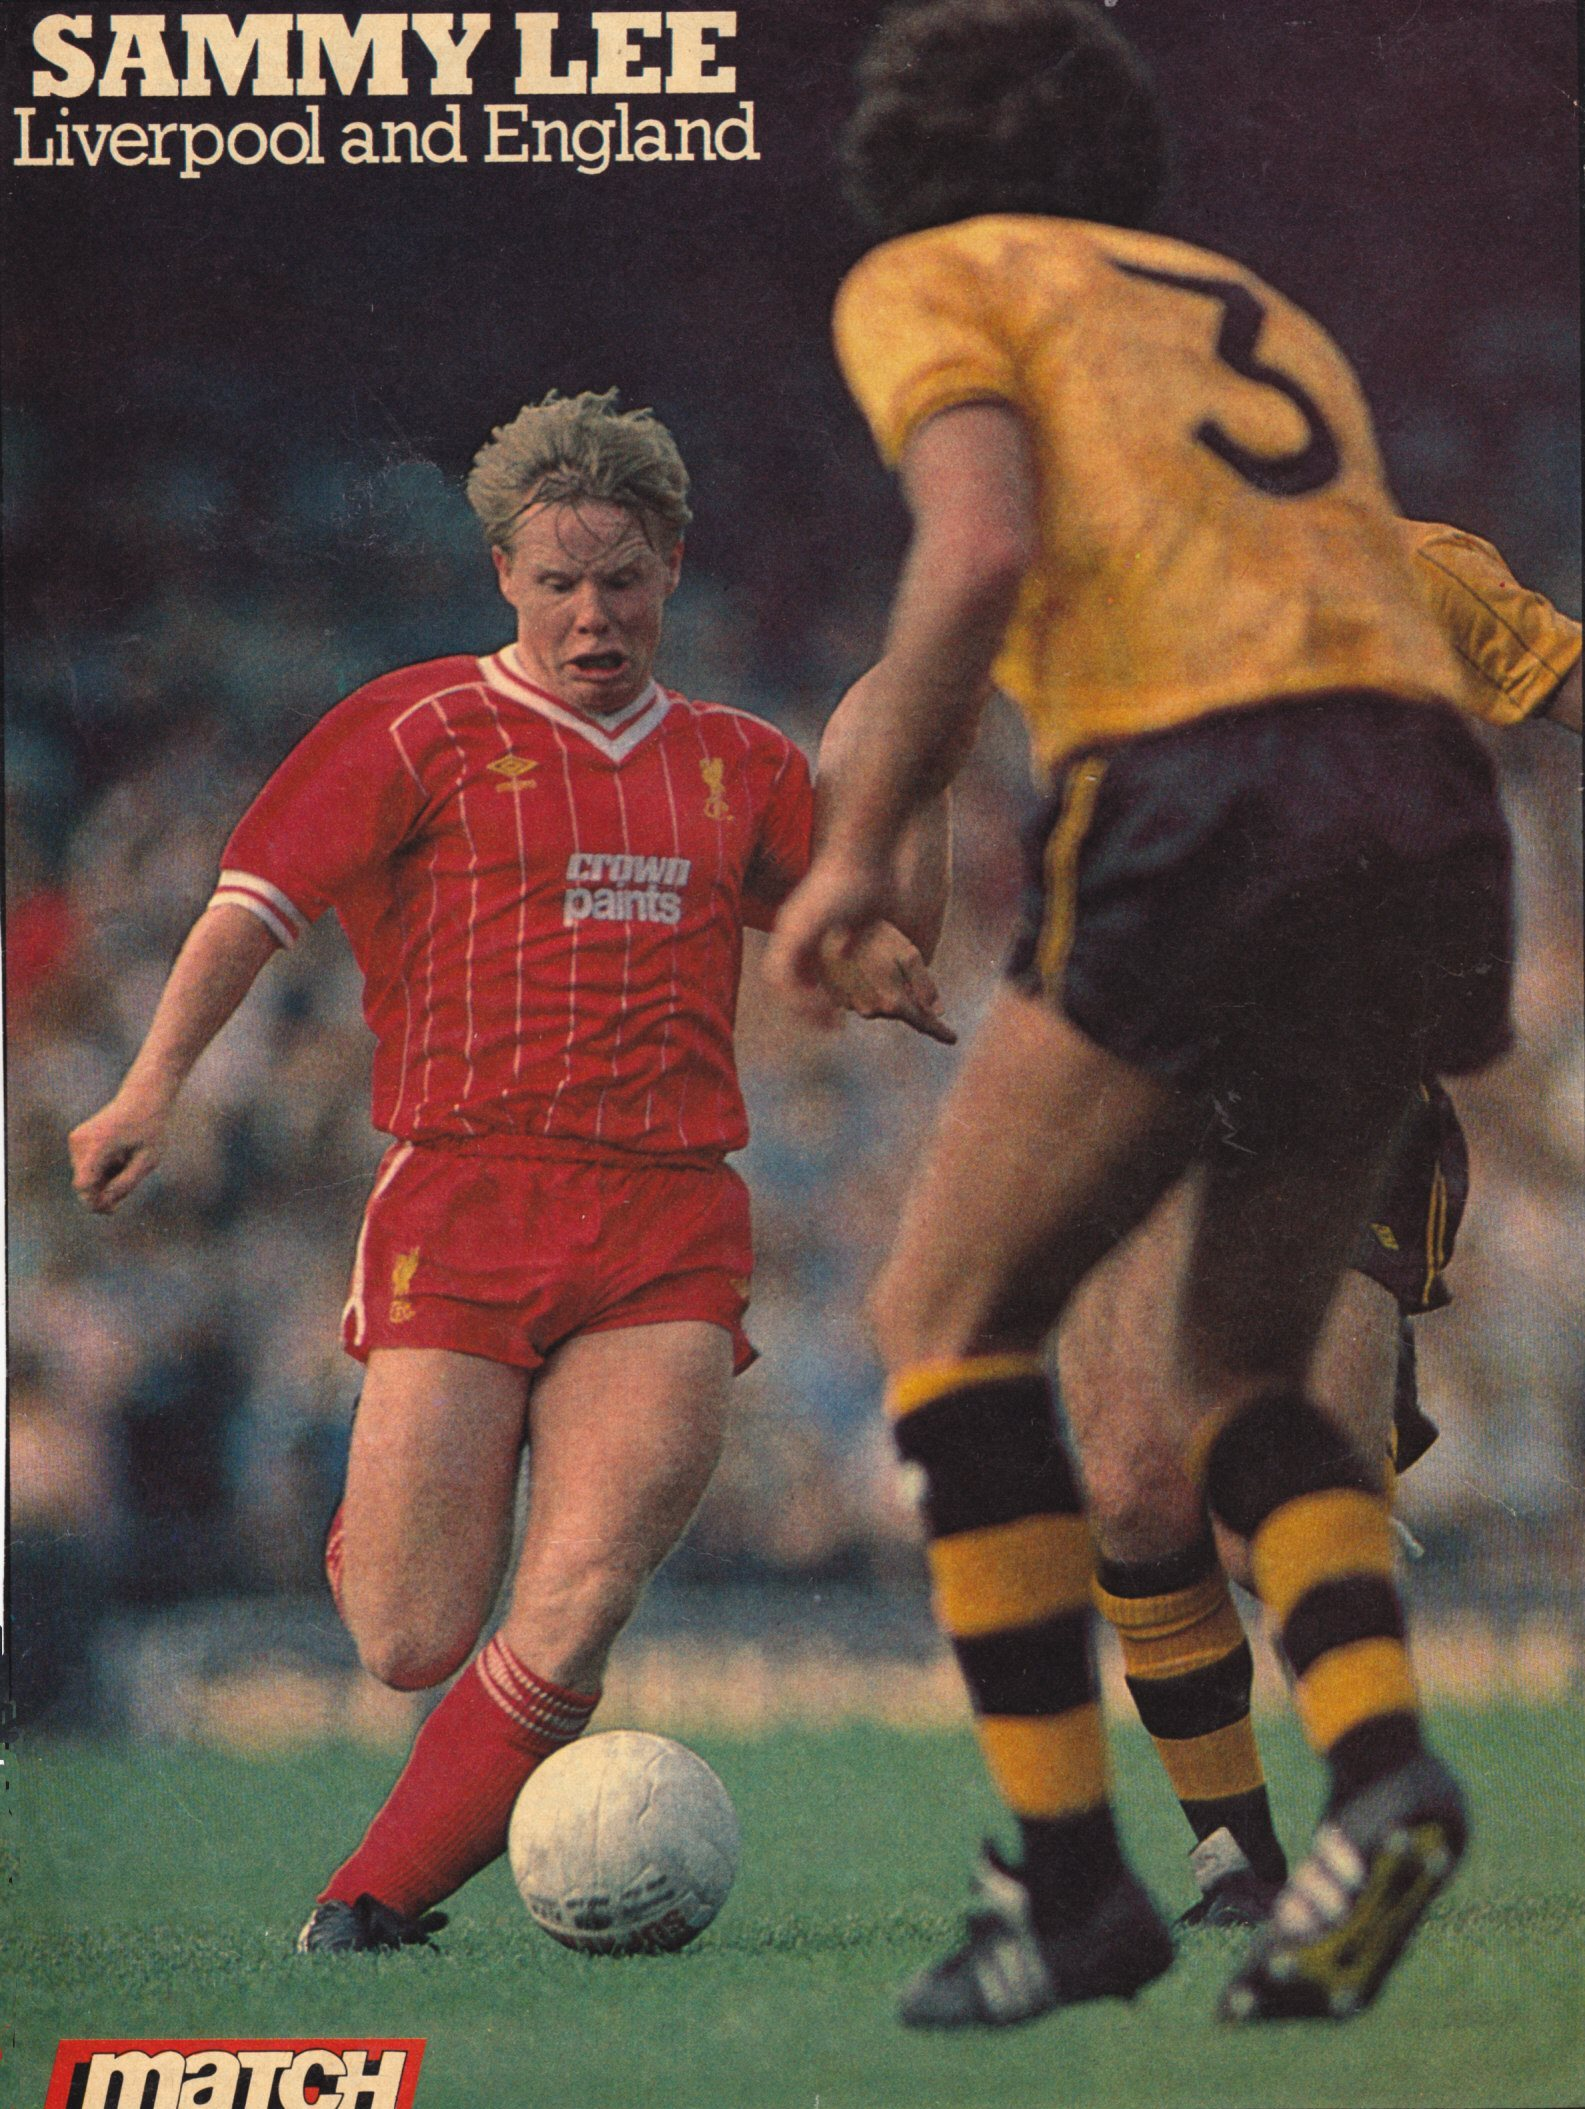 Match poster pf Sammy Lee - 1983/84 season